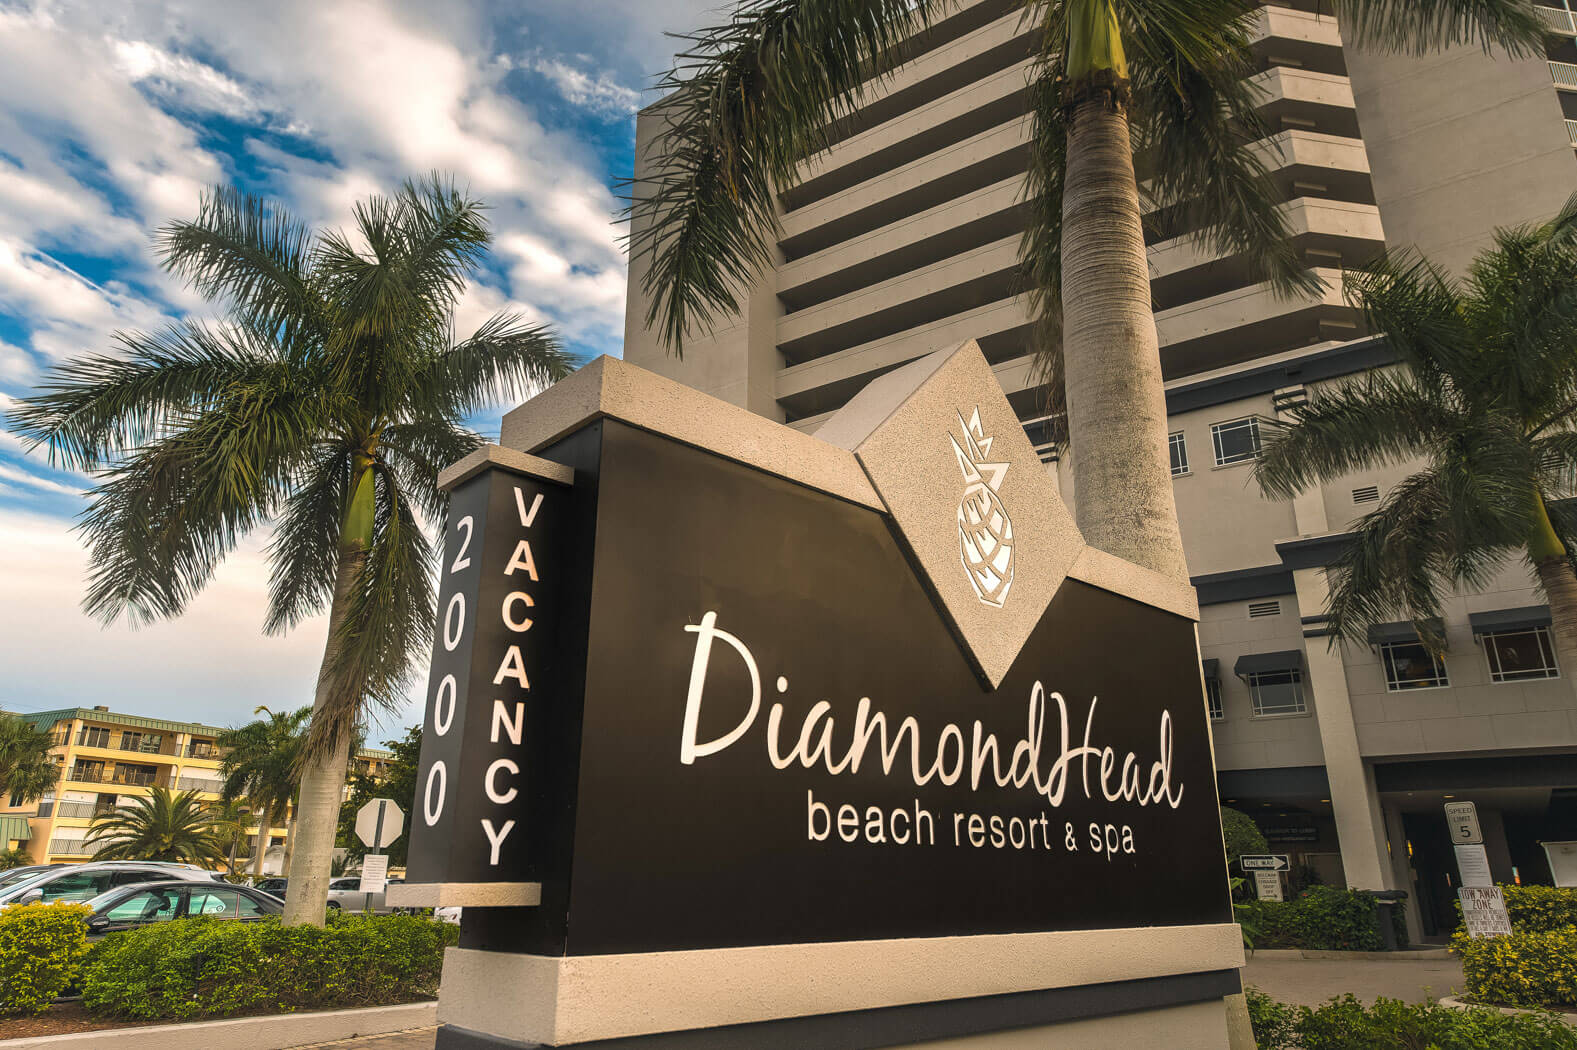 Permalink to Diamondhead Beach Resort